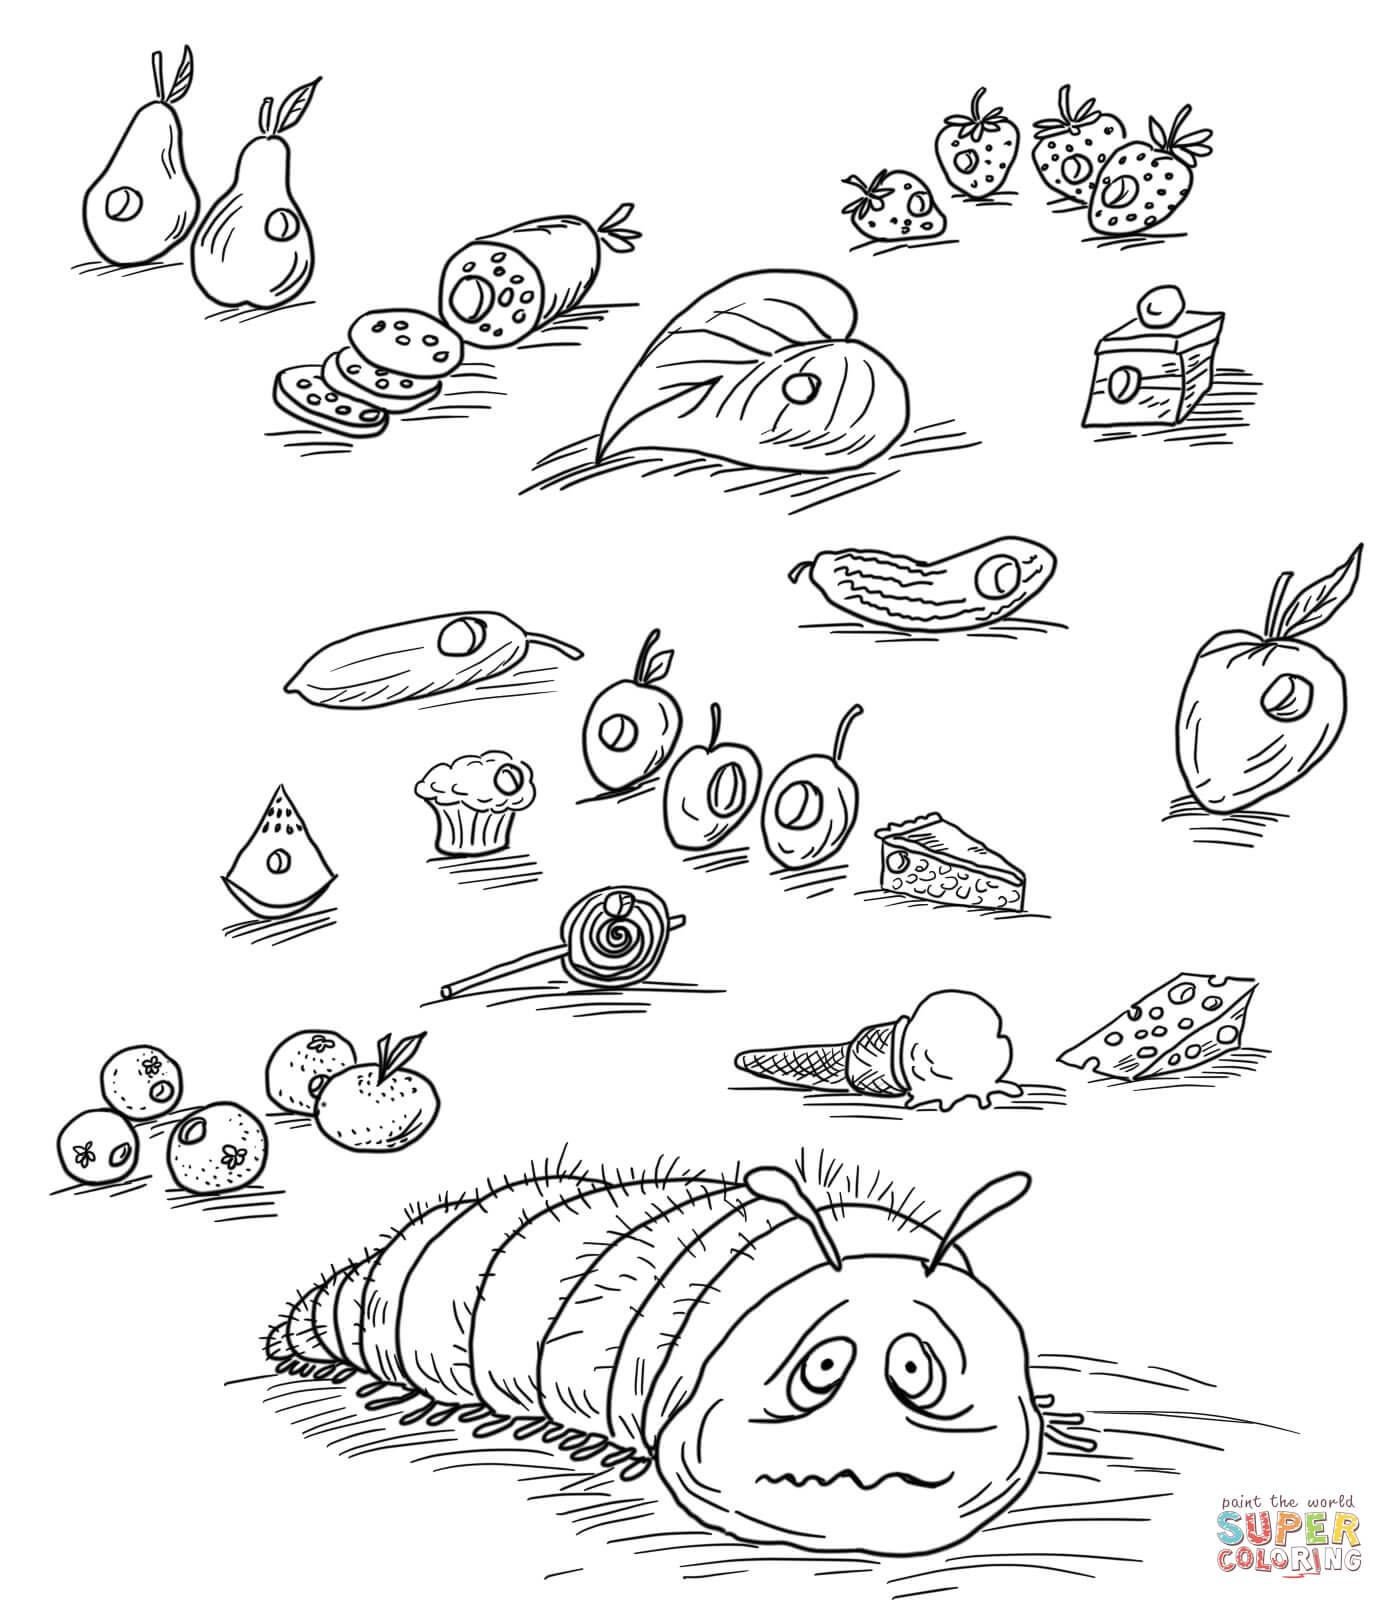 Very Hungry Caterpillar coloring page | Free Printable Coloring Pages